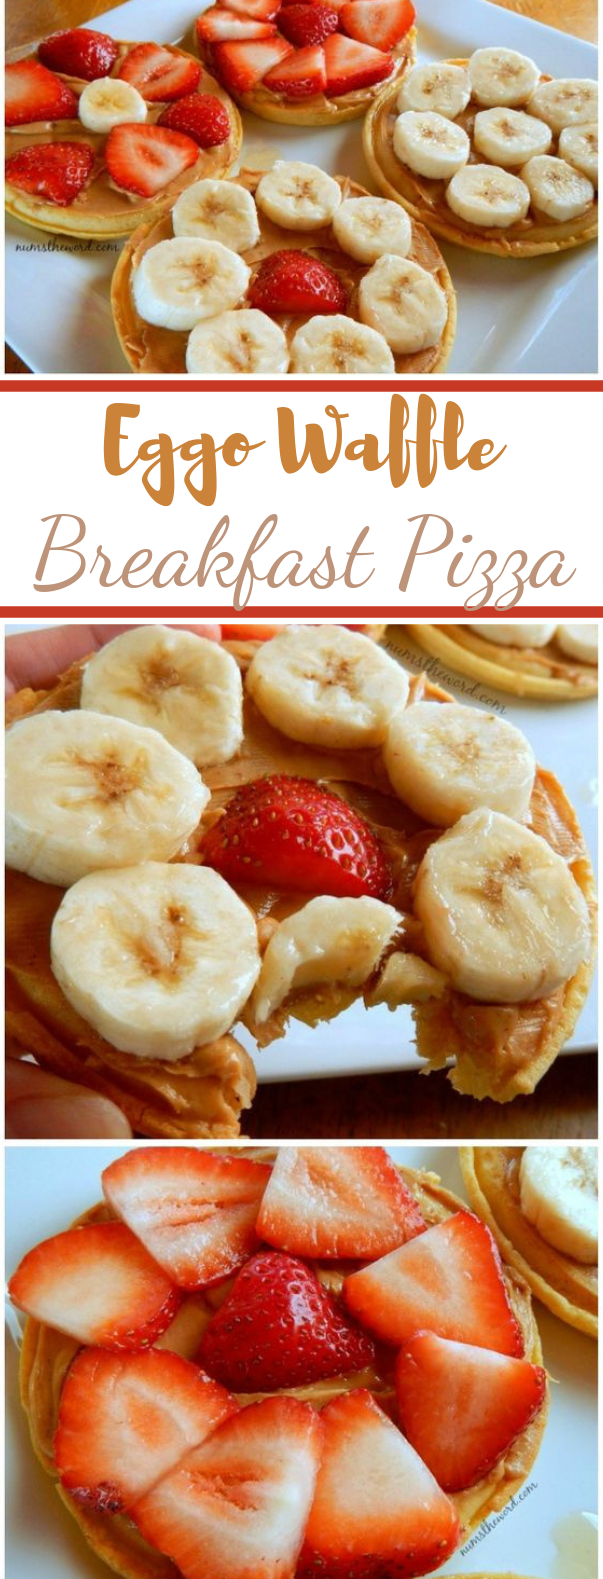 Eggo Waffle Breakfast Pizza #healthy #breakfast